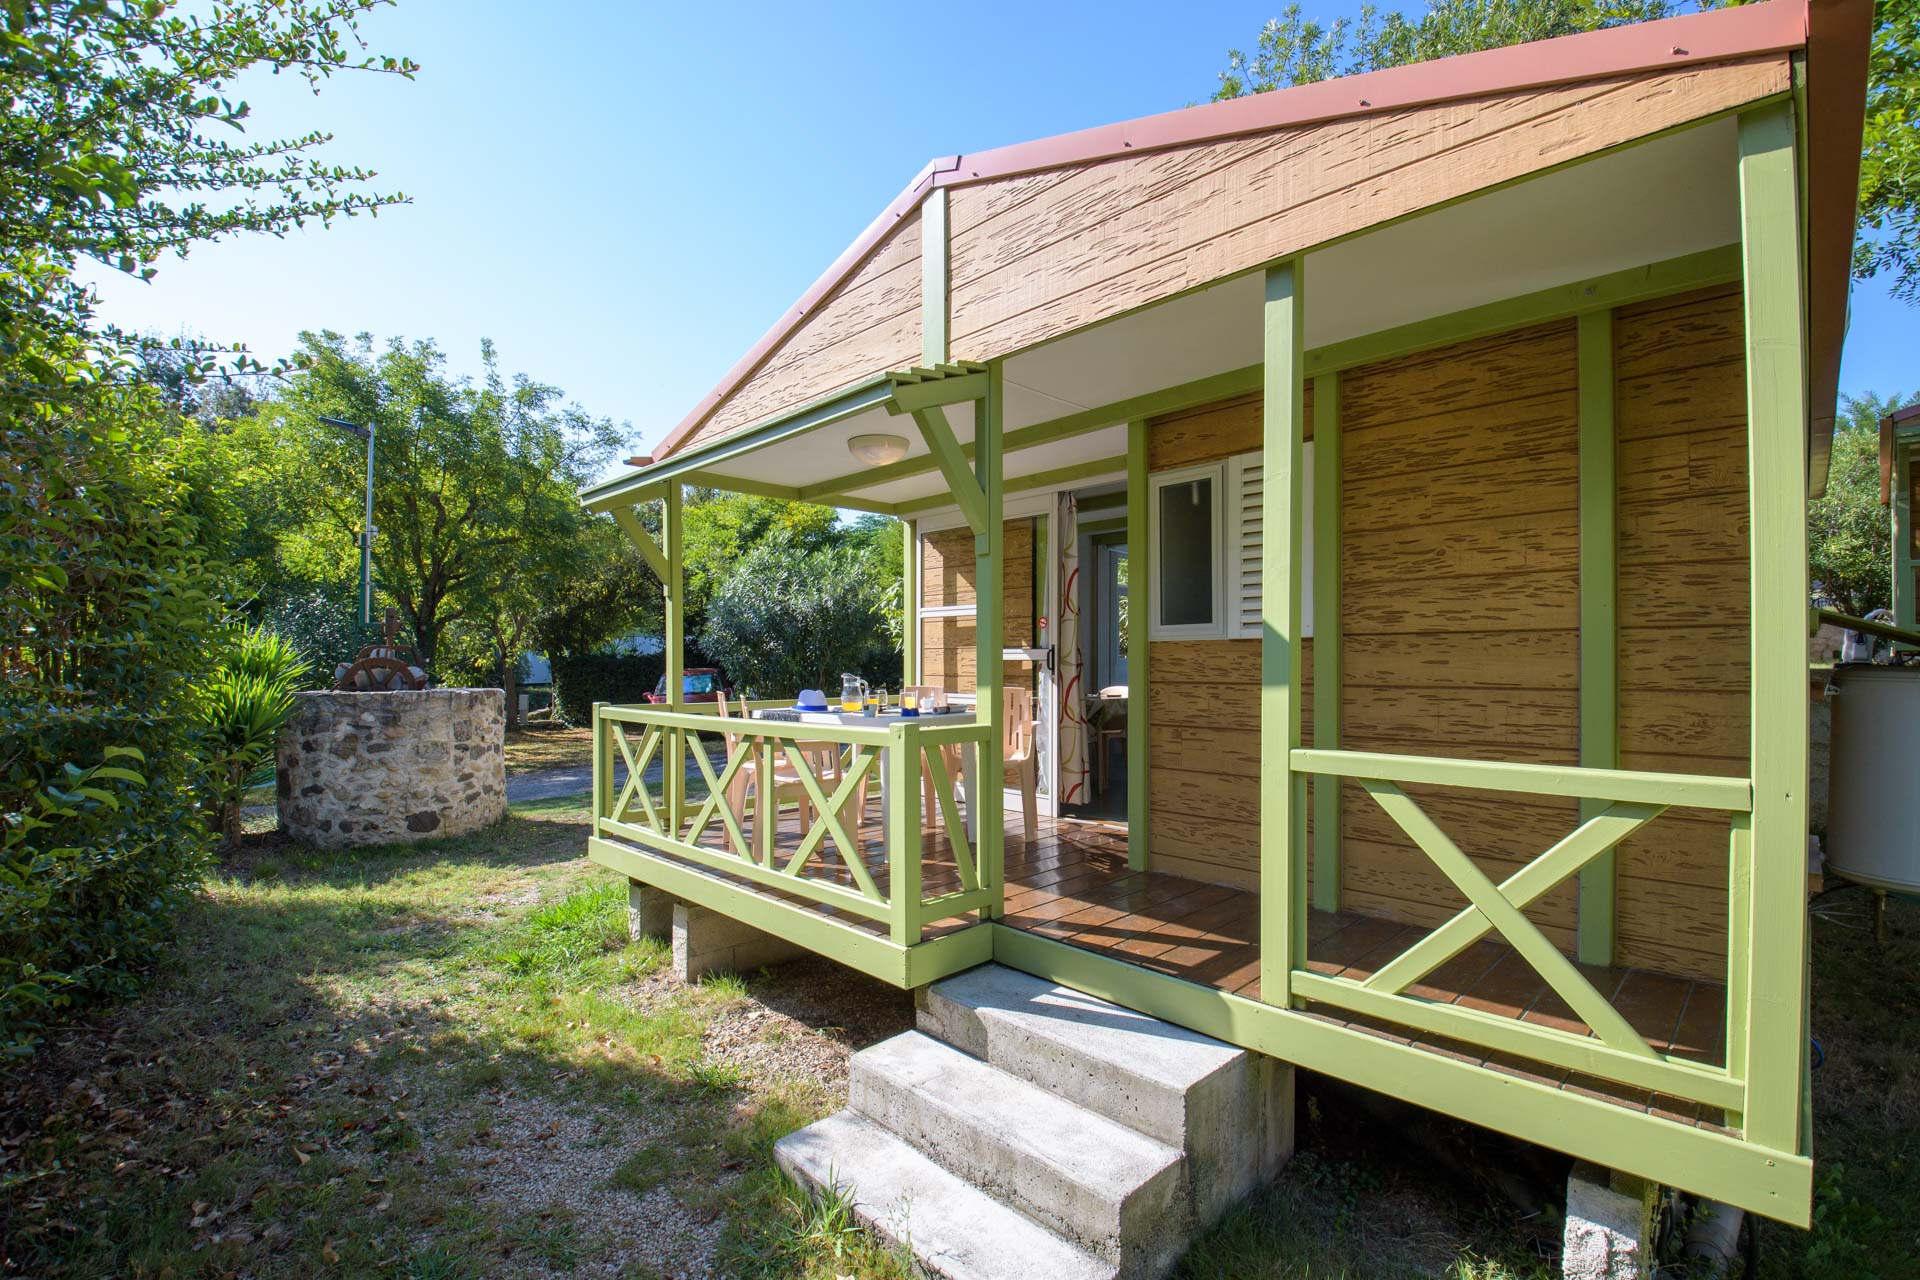 Chalet CLUB B 23m² / 2 chambres - Climatisation / Terrasse couverte